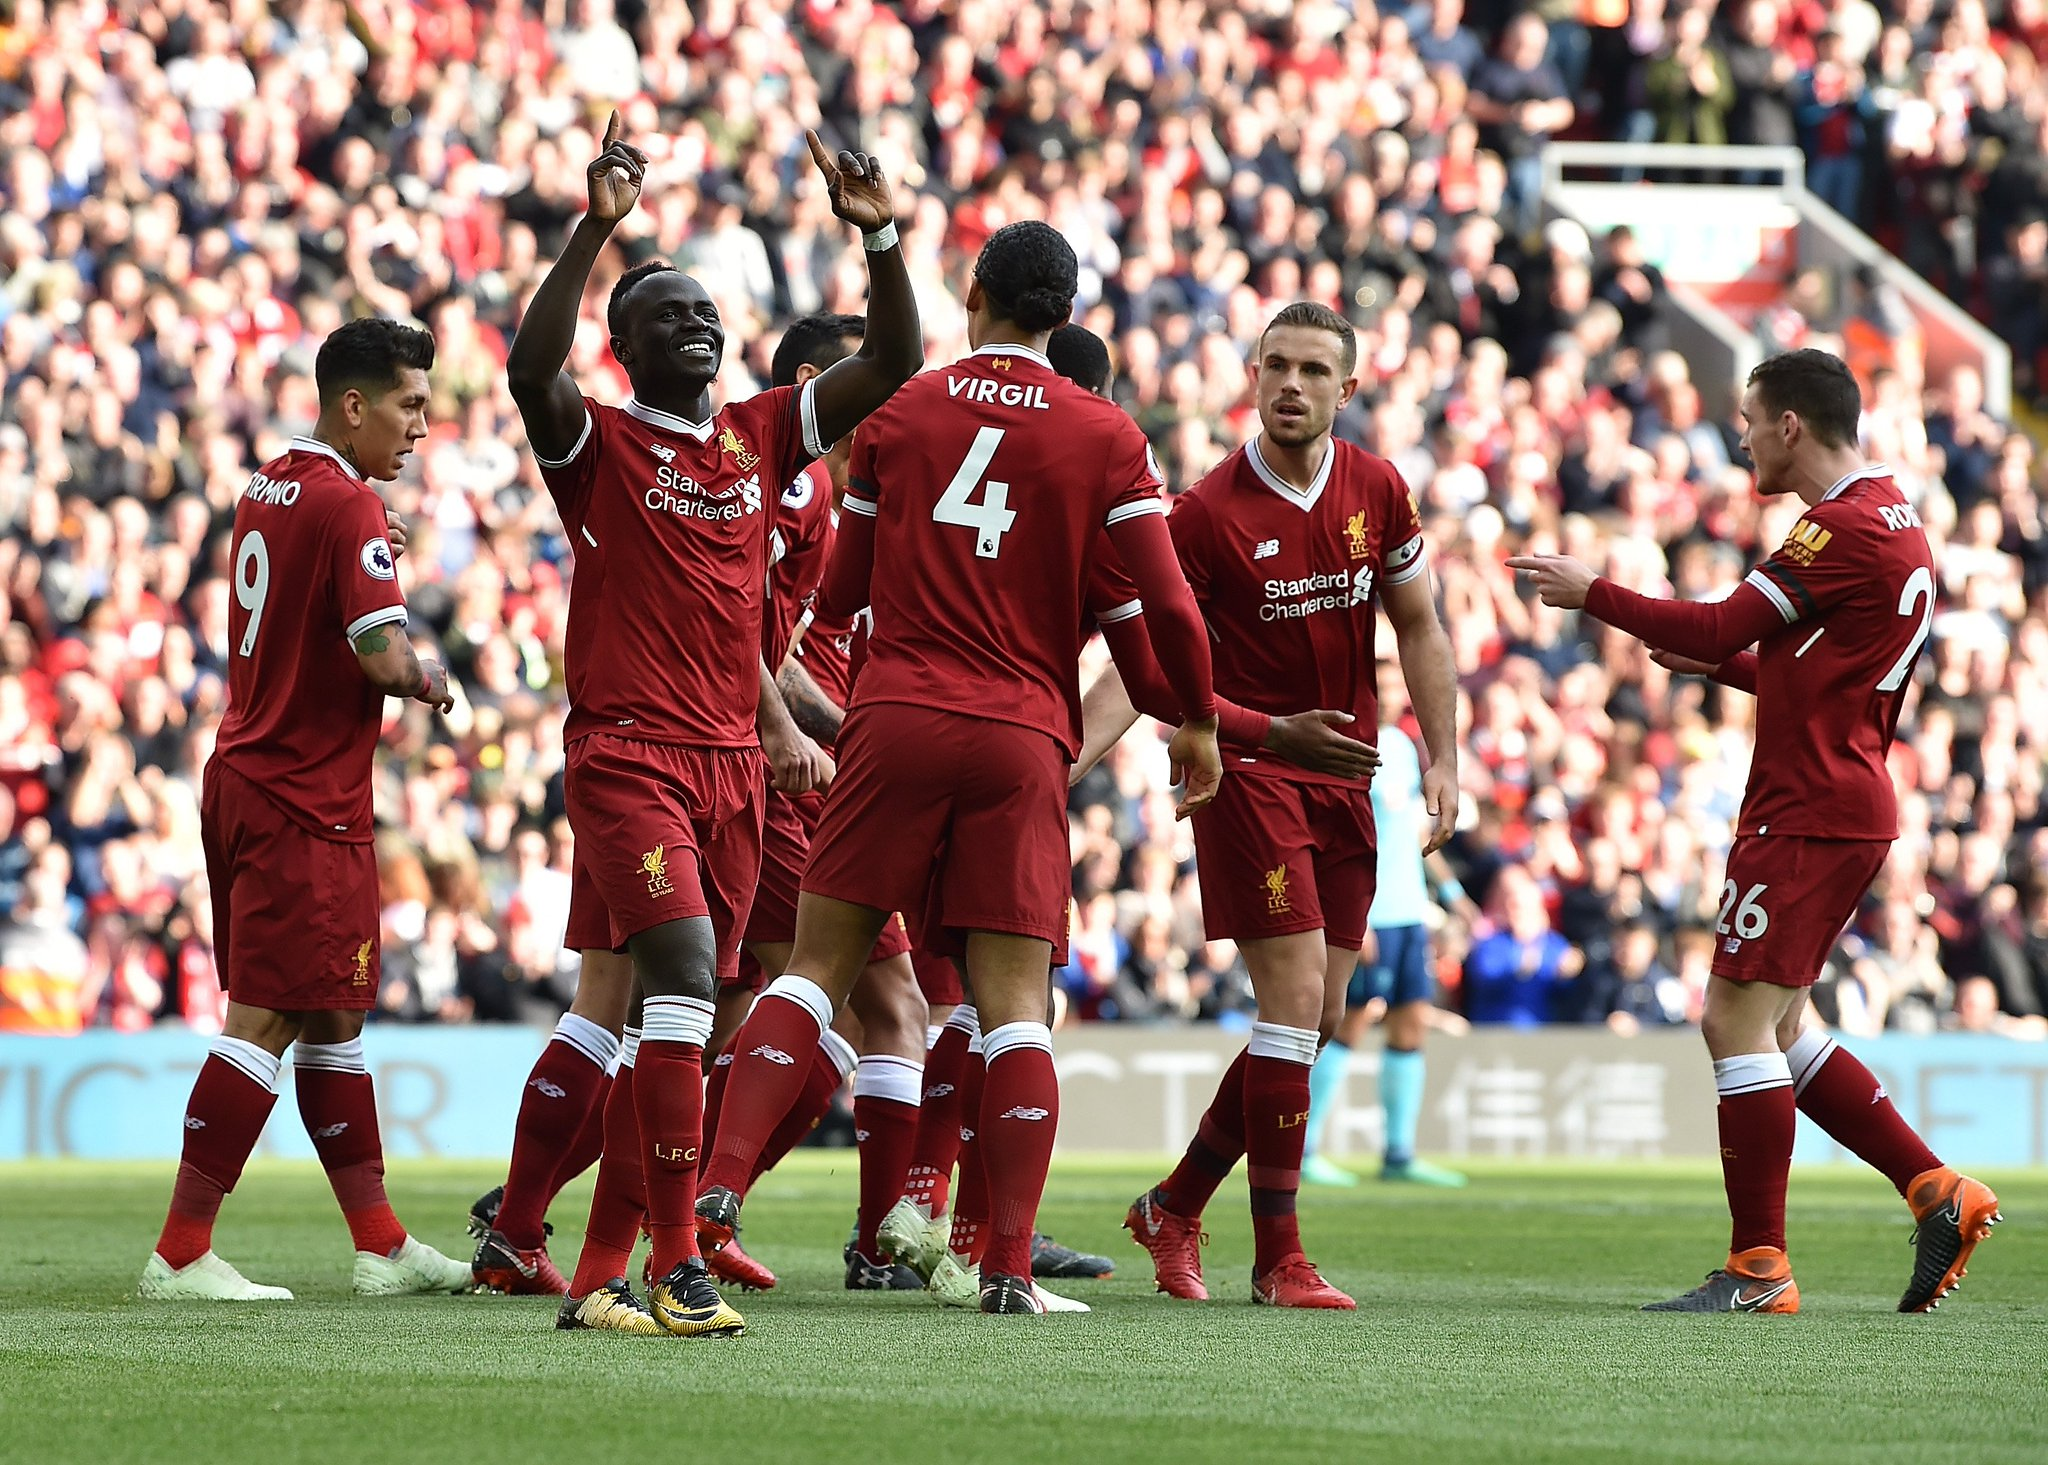 Sadio Mane is now the highest-scoring Senegalese player in @premierleague history with 44 goals. ������  #LIVBOU https://t.co/CFiXenyx0T